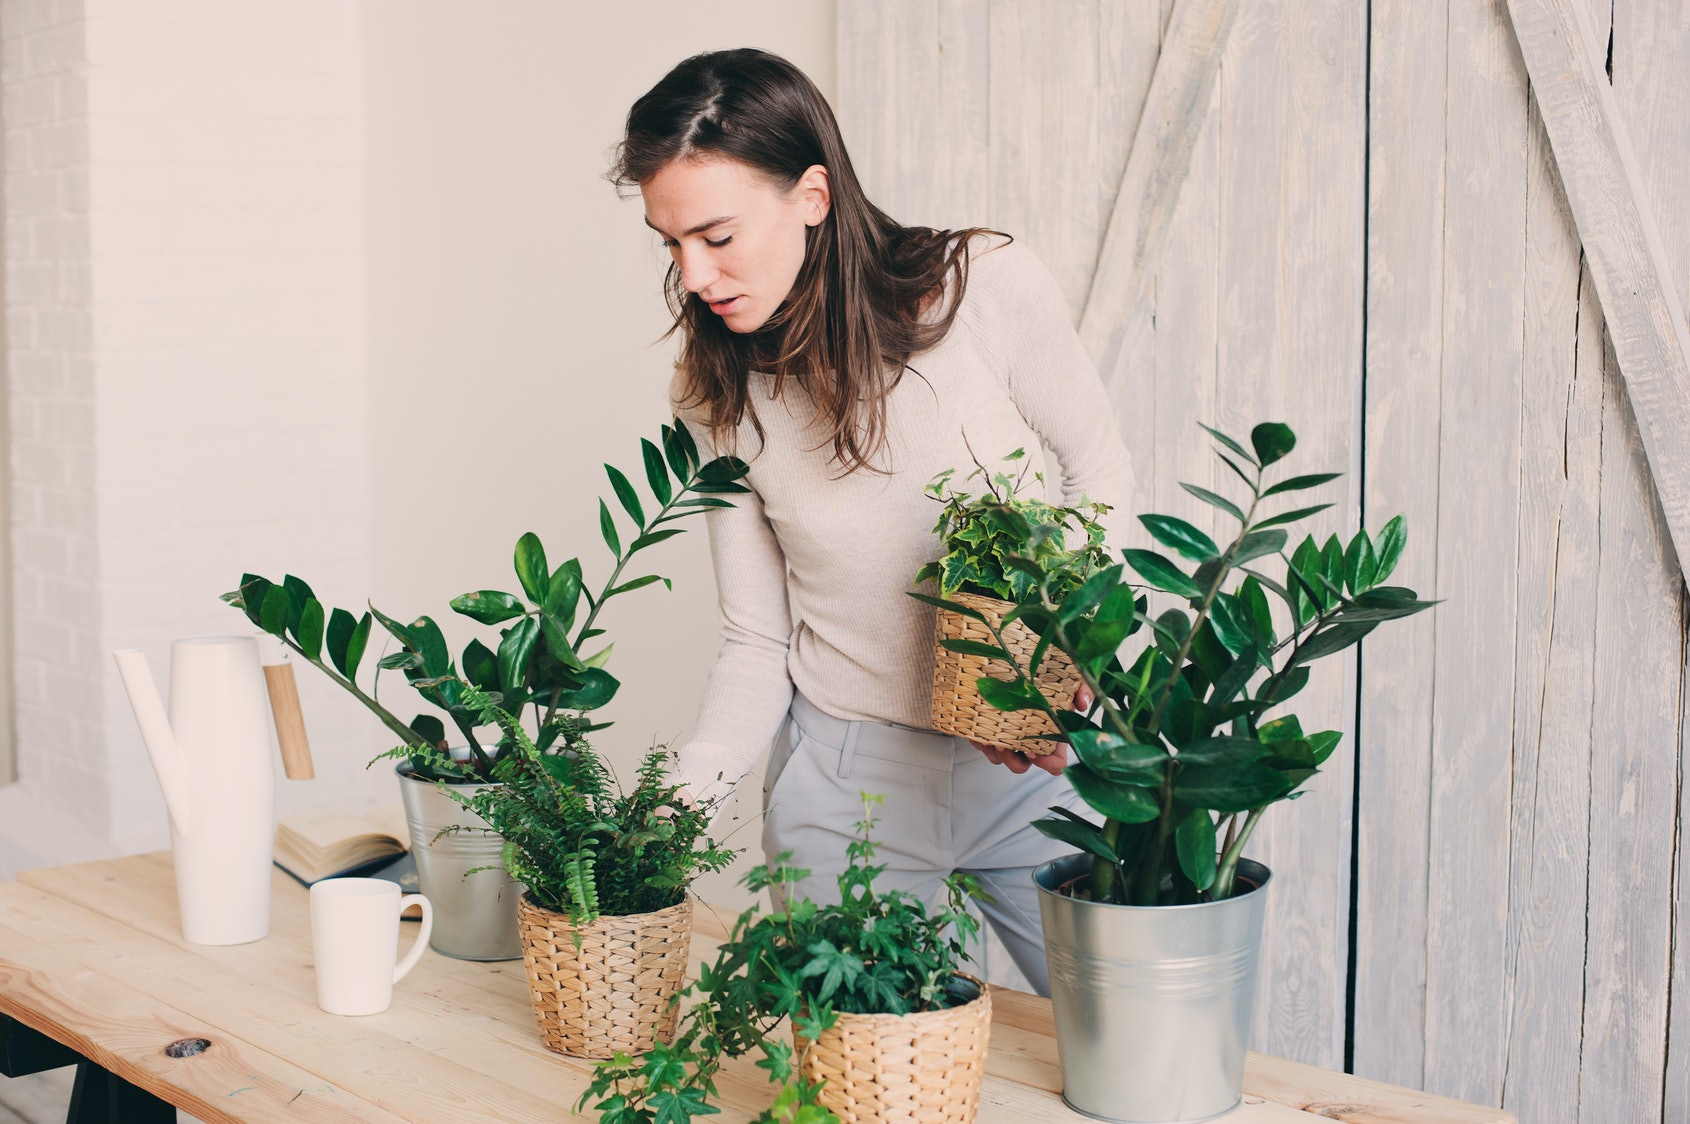 7 House Plants For Allergies That Can Help Clear The Air